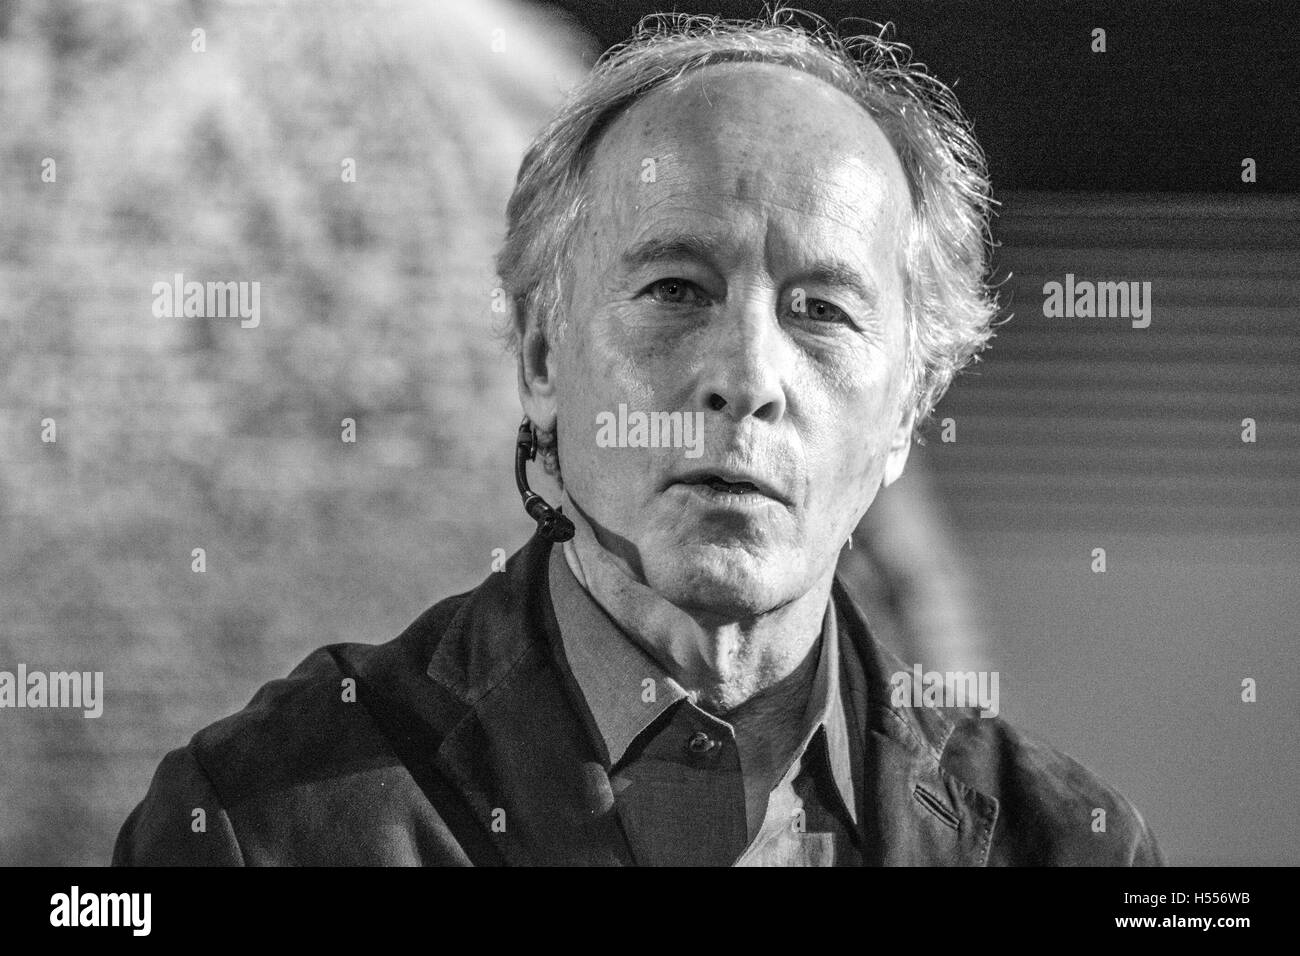 American noveslit, Richard Ford, talks during his conference like winner of Princess of Asturias Awards of Literature. - Stock Image